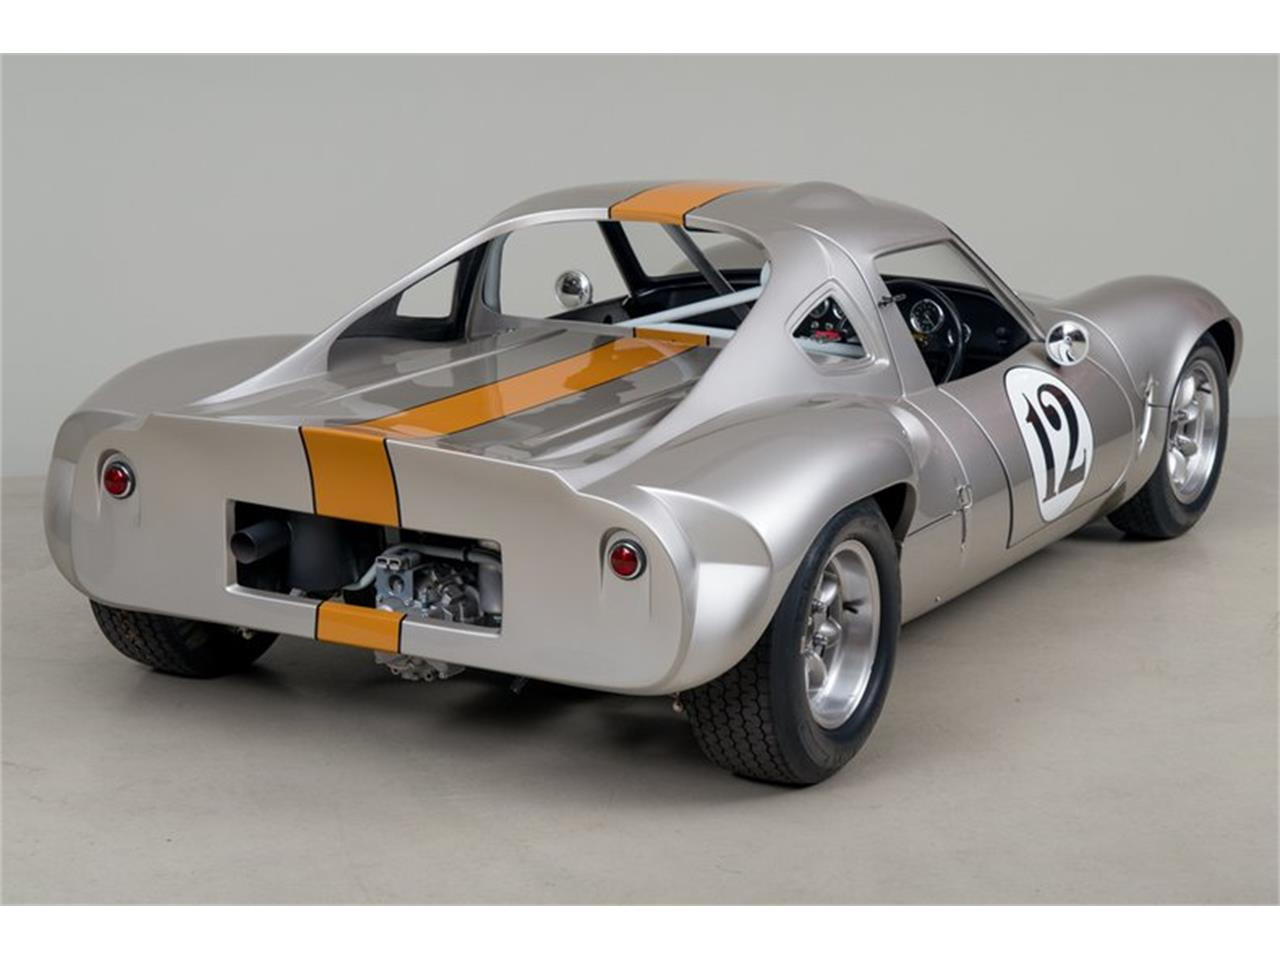 1967 Ginetta G12 for sale in Scotts Valley, CA – photo 29